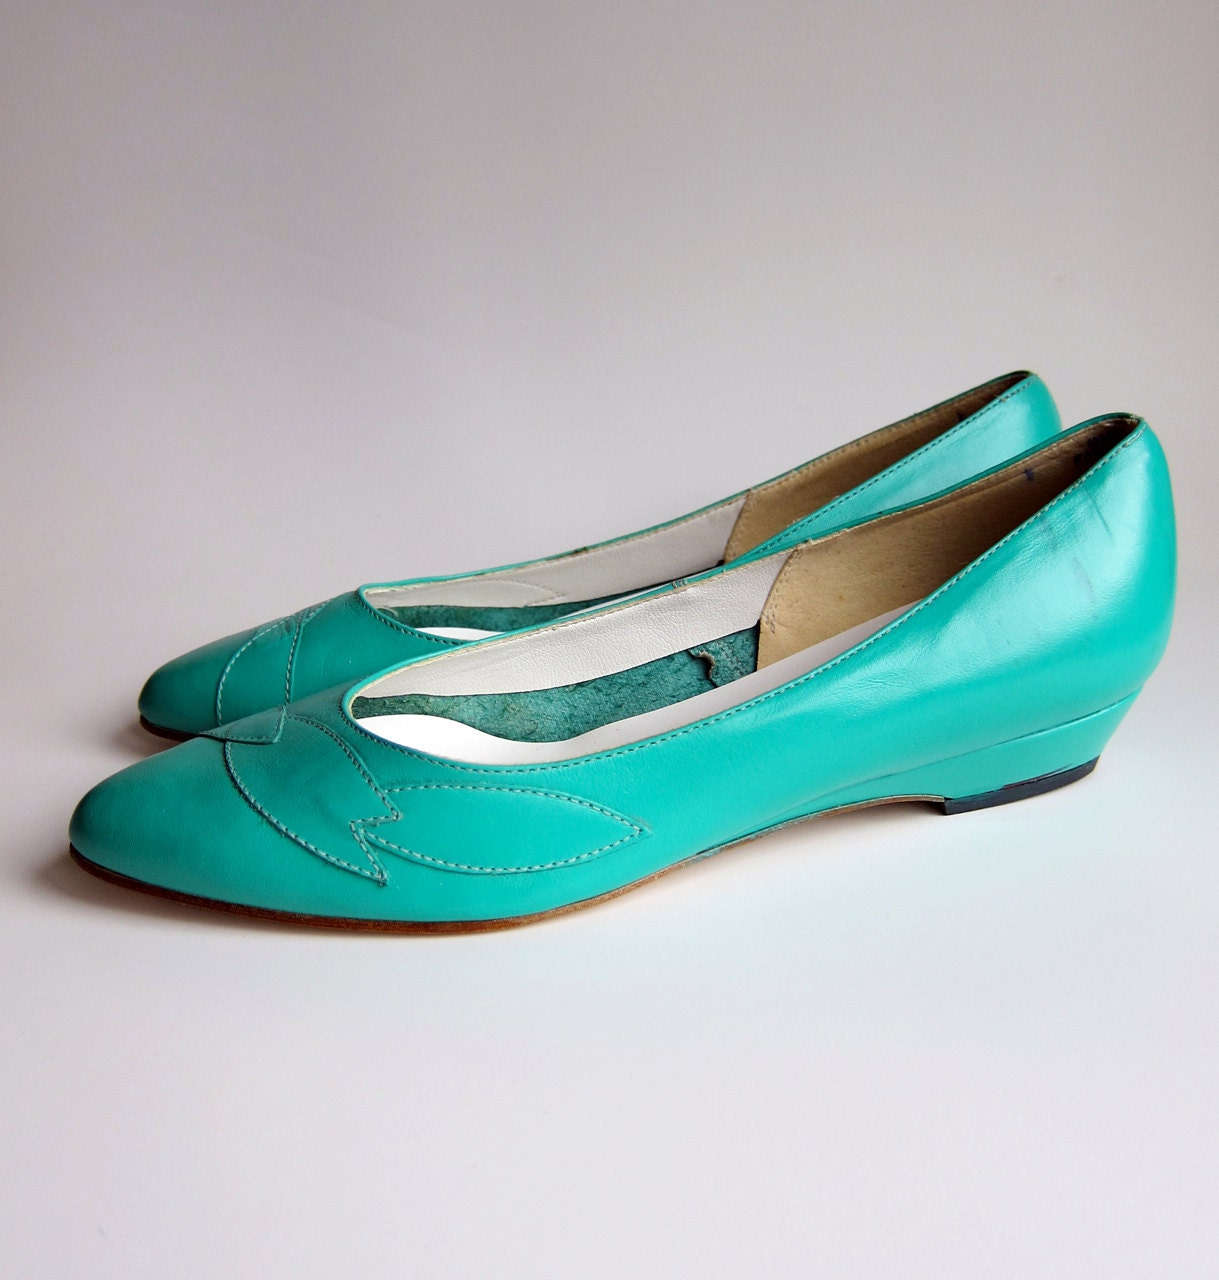 Vintage 1980s Shoes / TURQUOISE SEAFOAM GREEN Skimmers Ballet Flats Size 7 1/2 Deadstock